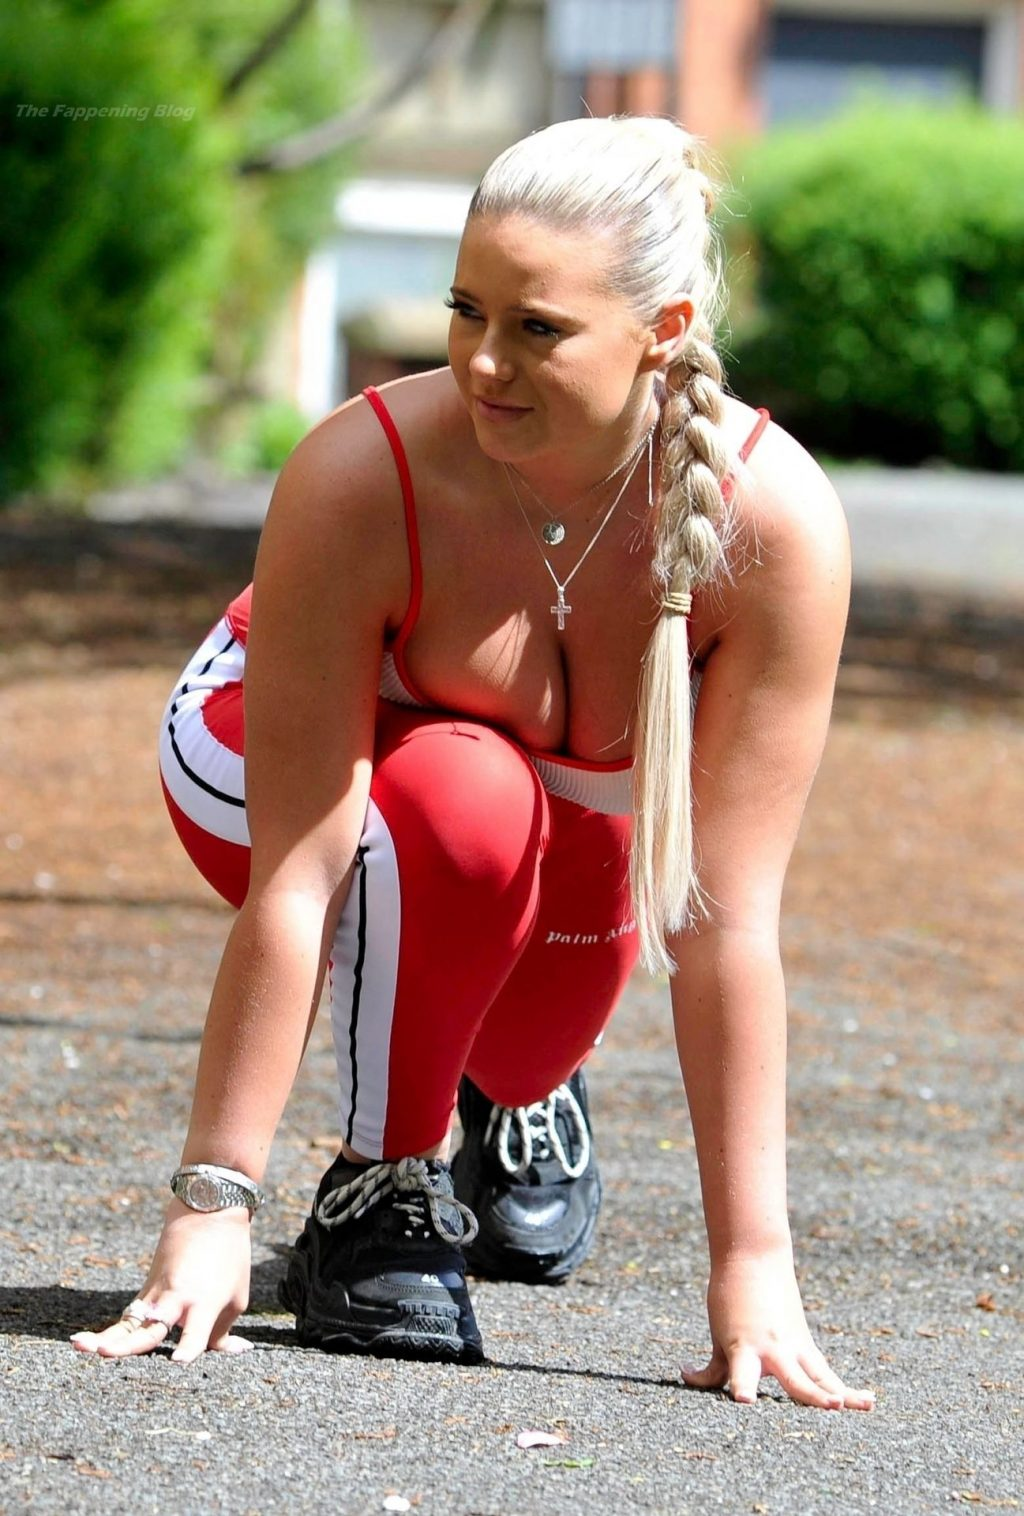 Apollonia Llewellyn is Pictured Working Out in Manchester (21 Photos)